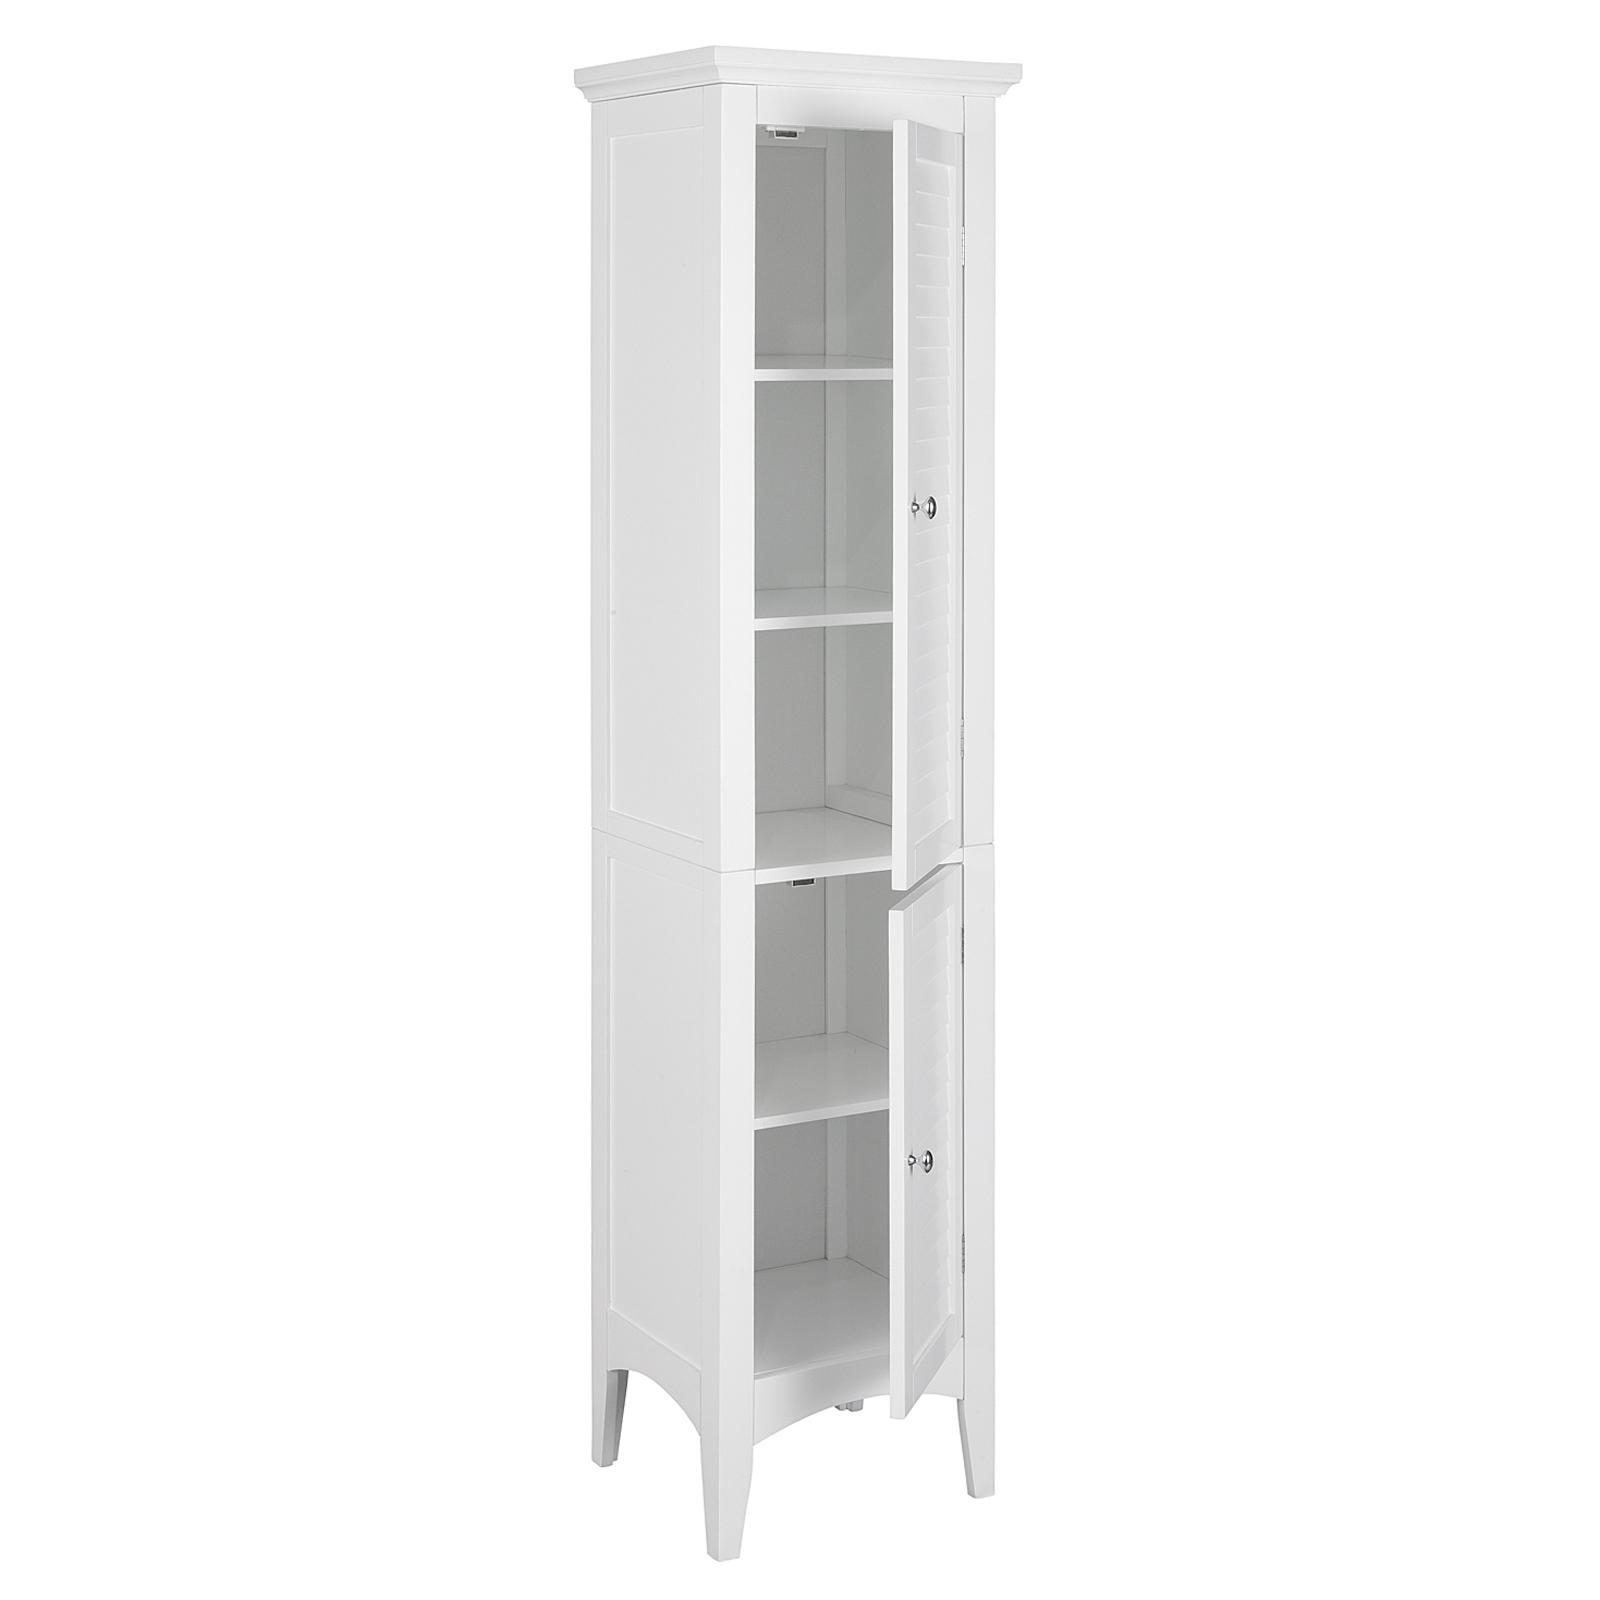 Elegant Home Fashions Slone Linen Tower With 2 Shutter Doors White 600180632000 Ebay